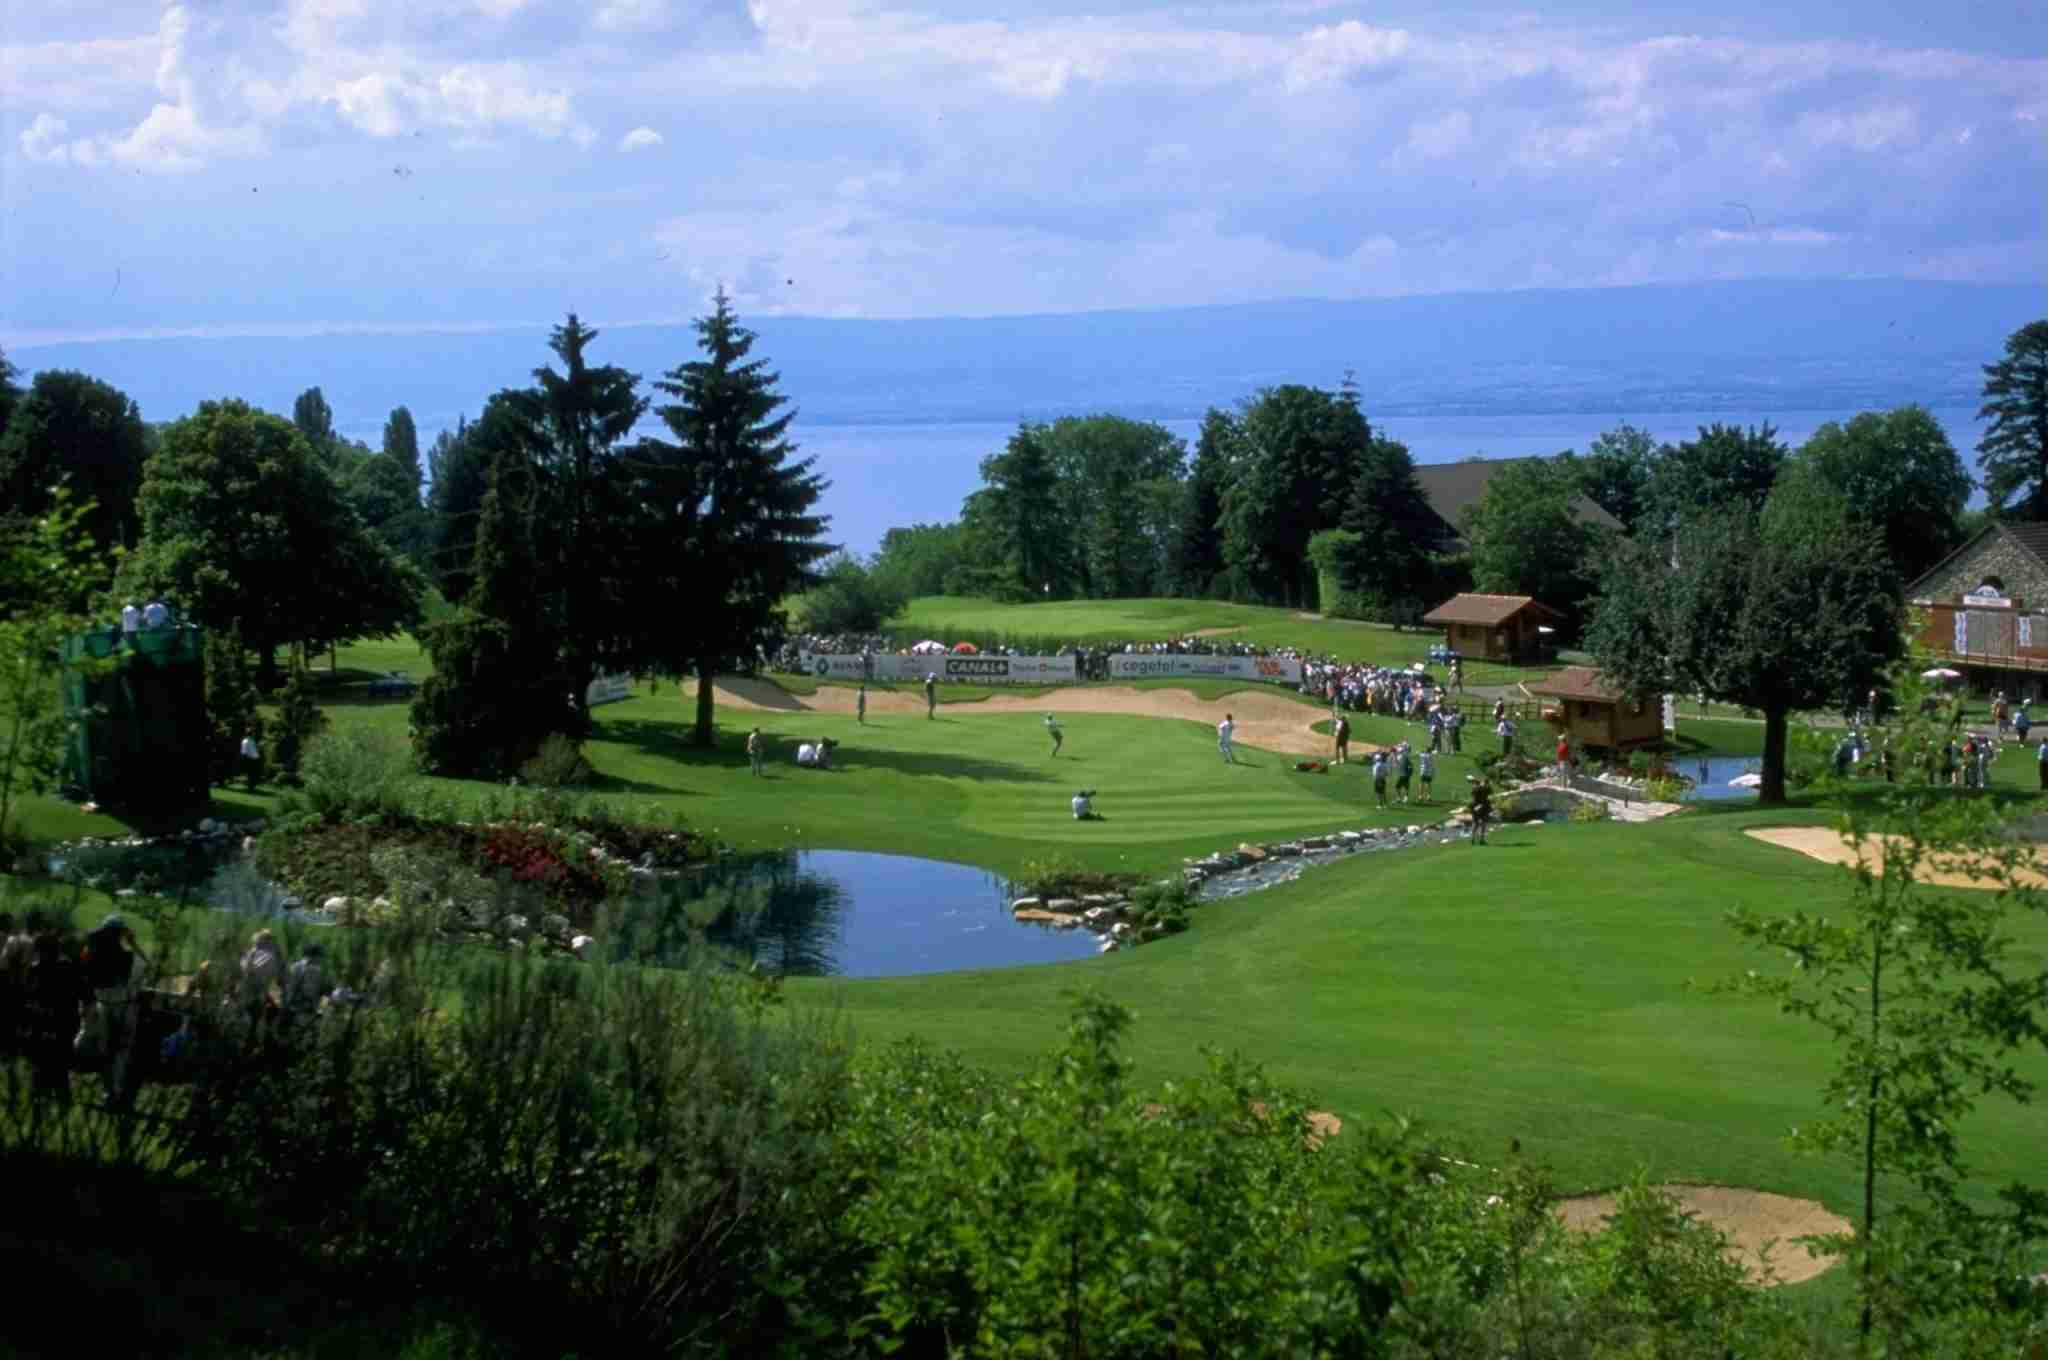 Evian gold course (Photo by Stephen Munday/Getty Images)